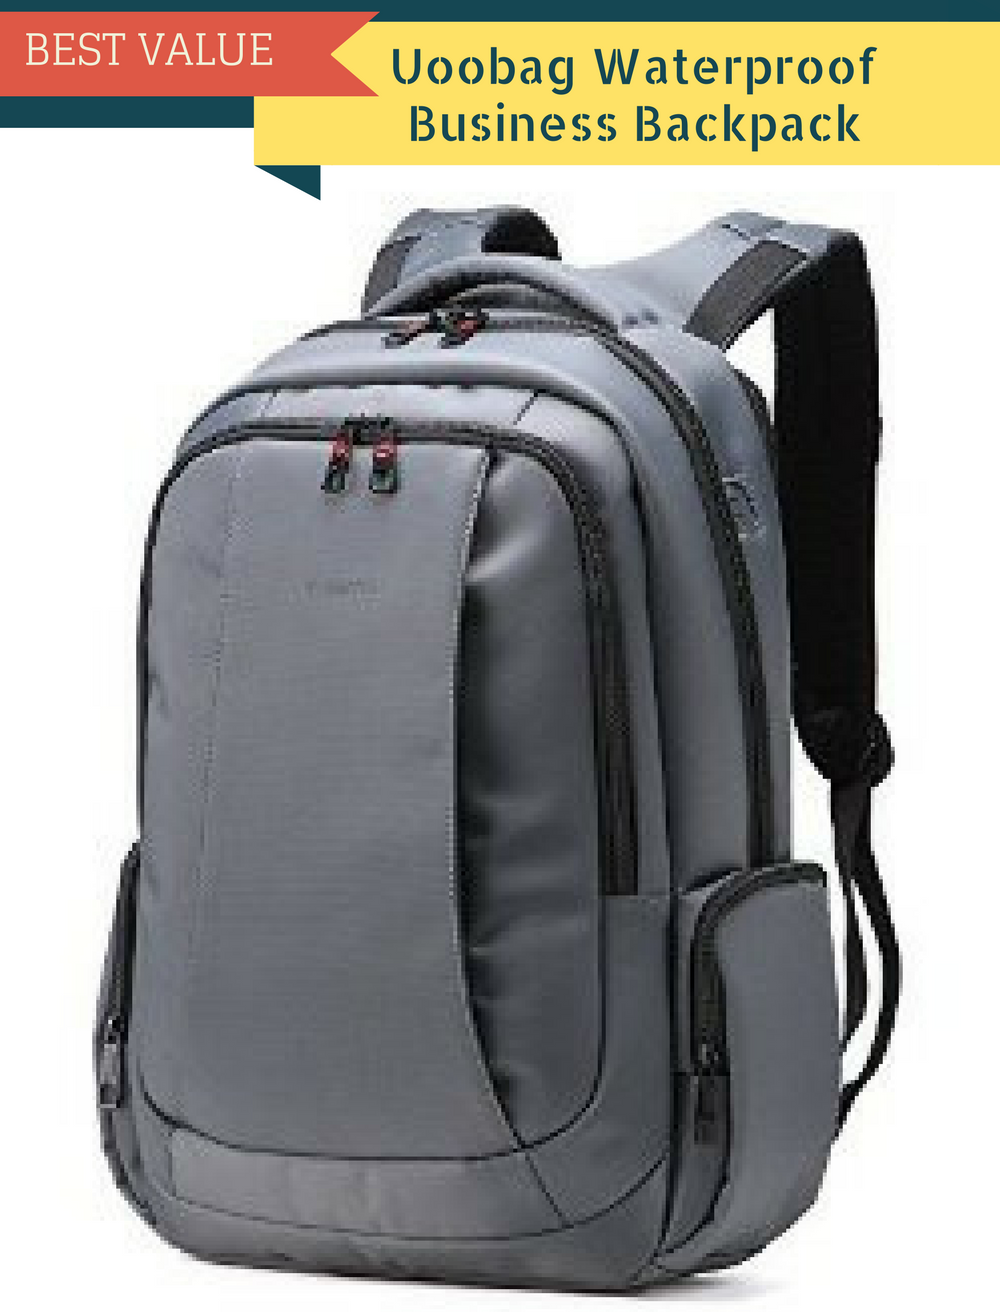 Uoobag Waterproof Business Backpack